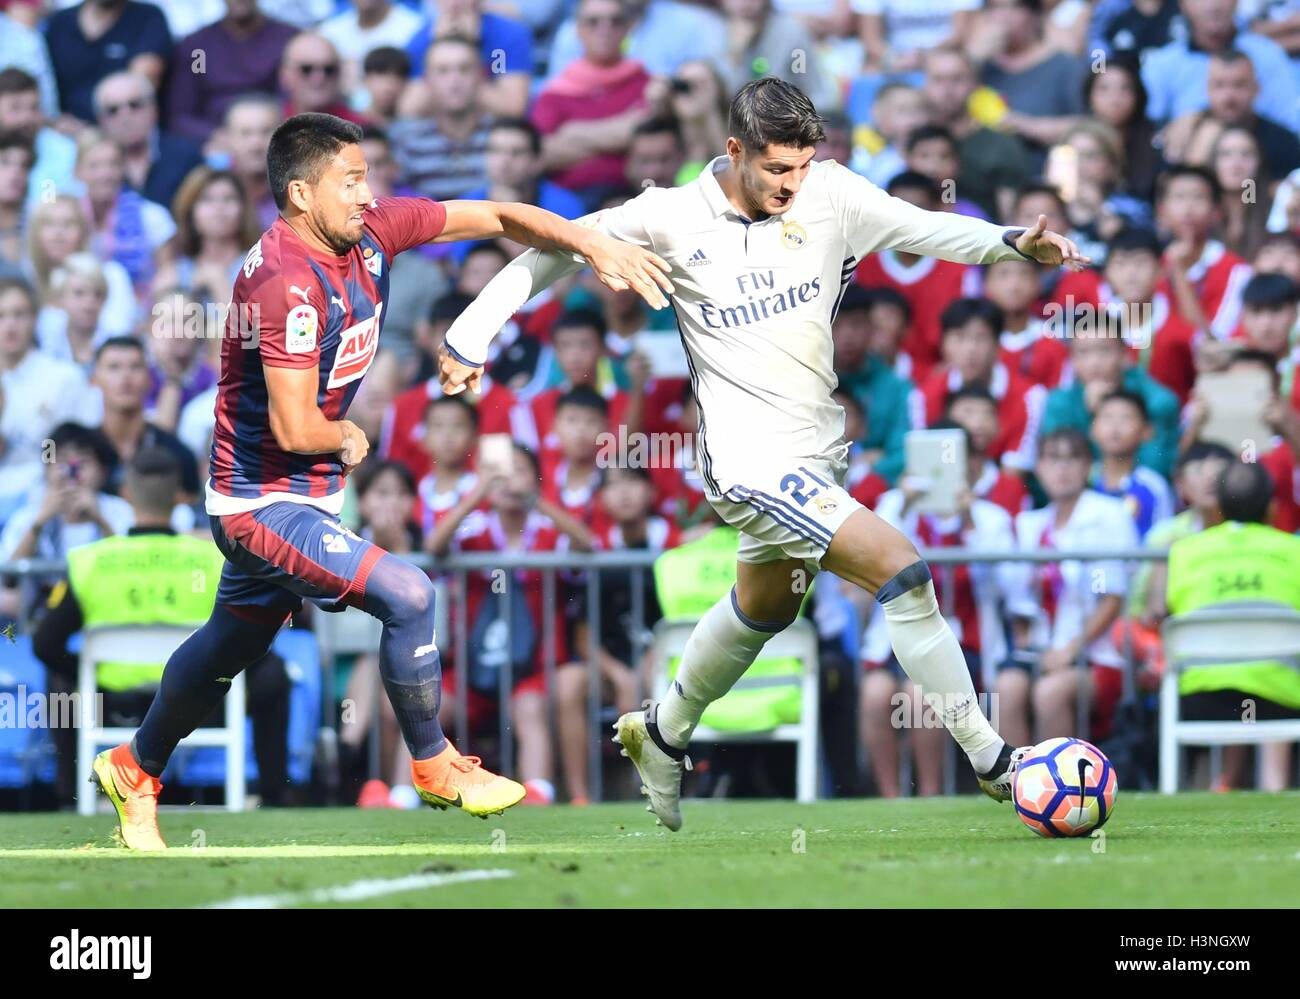 during the LA LIGA match between Real Madrid and SD Eibar played at Estadio Santiago Bernabeu, Madrid - FOTO : J.M.Colomo - Stock Image